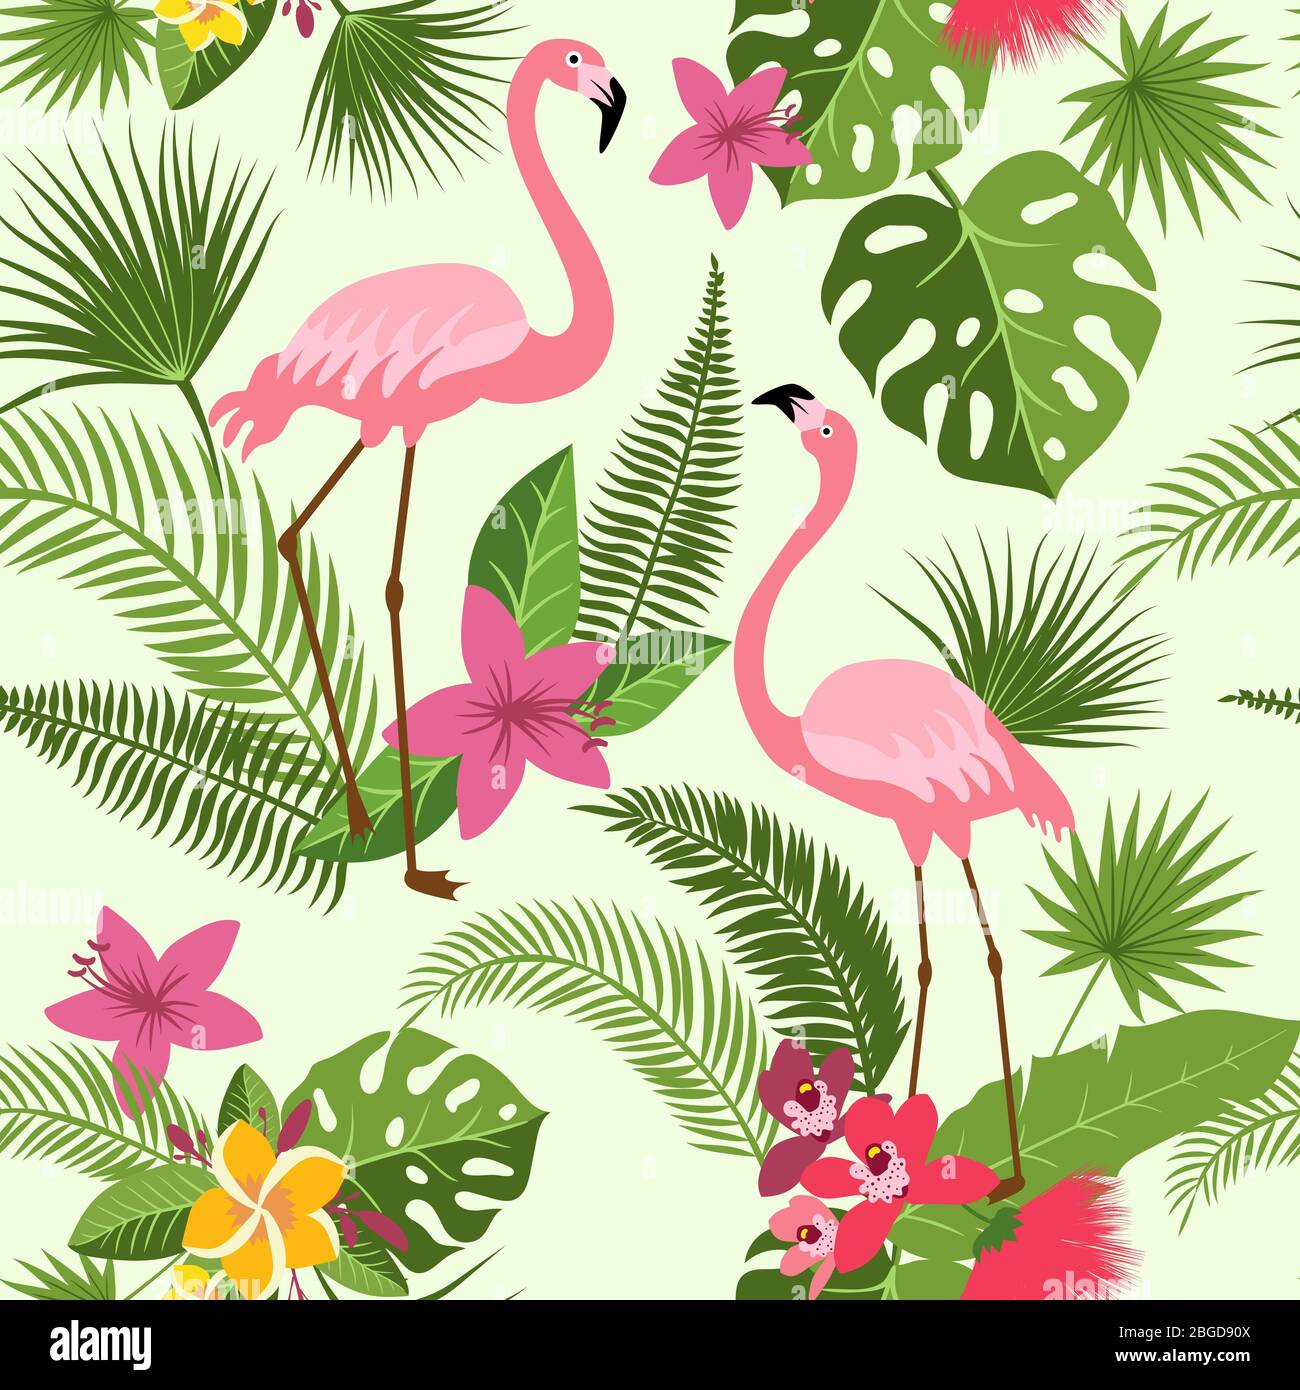 Vector Seamless Pattern With Flamingo Tropical Flowers And Palm Tree Summer Hawaiian Background Stock Vector Image Art Alamy Popular background hawaiian of good quality and at affordable prices you can buy on looking for something more? https www alamy com vector seamless pattern with flamingo tropical flowers and palm tree summer hawaiian background image354334314 html